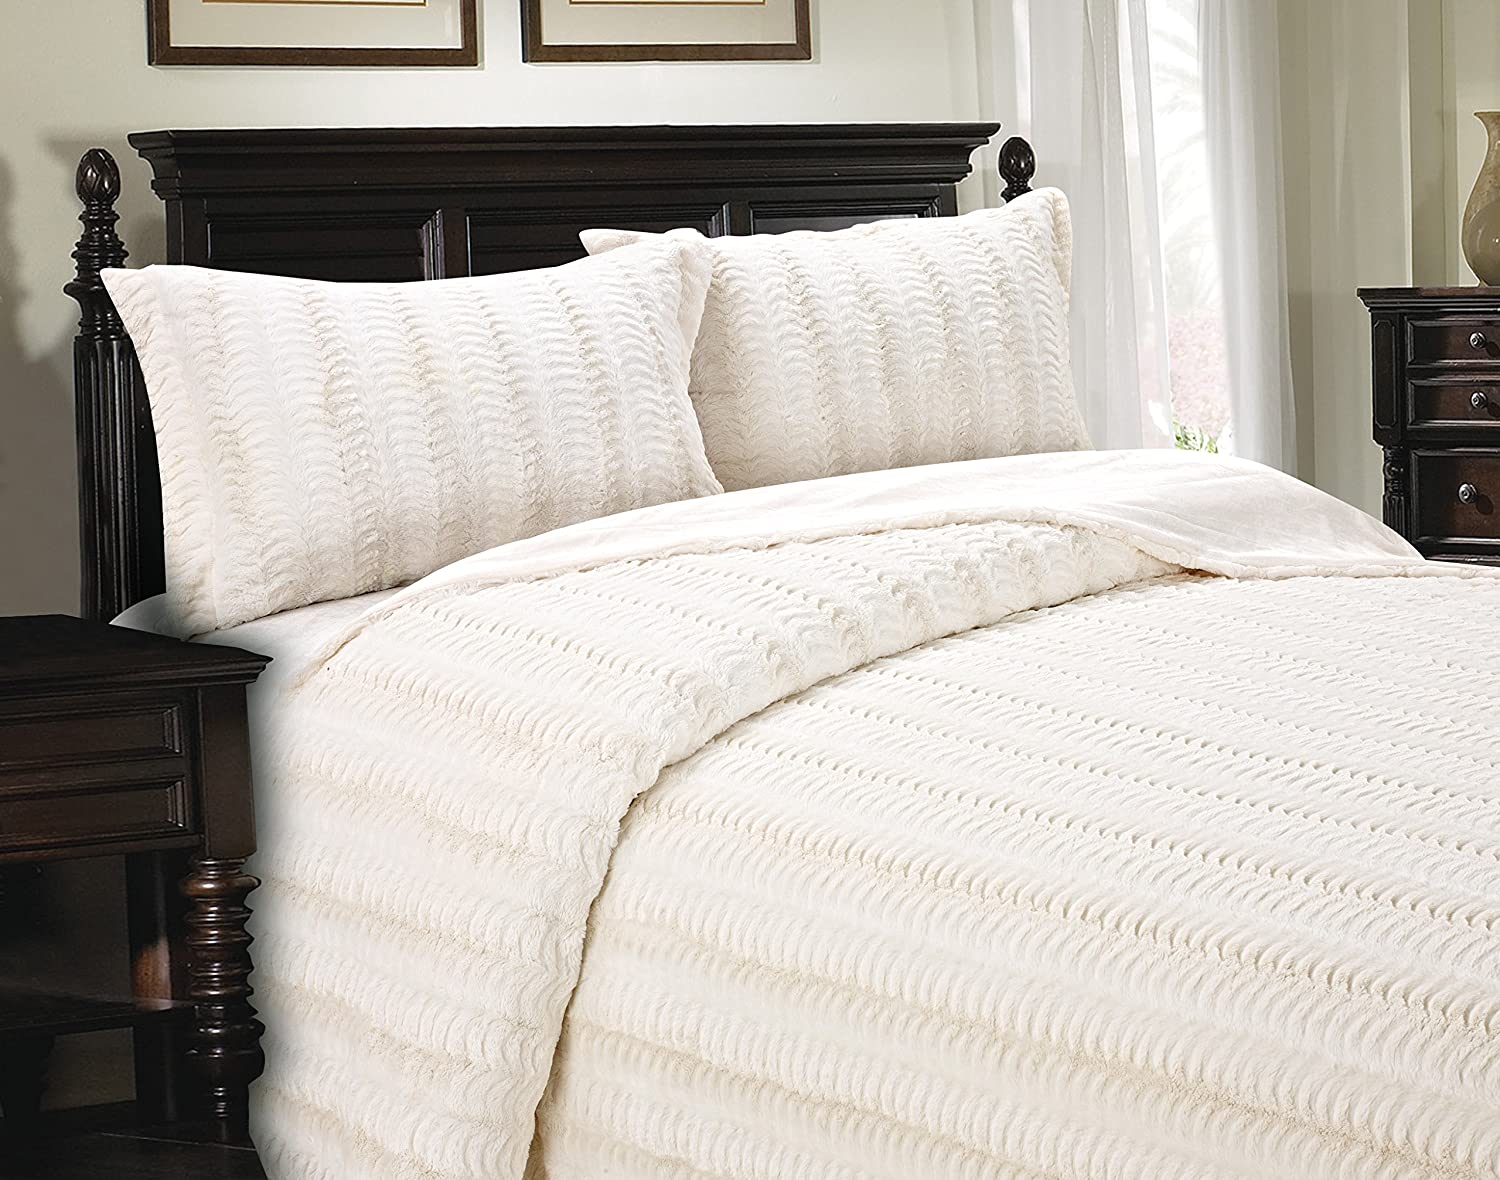 Cathay Home Lofty Luxe Faux Fur Blanket, Full Queen, Cream